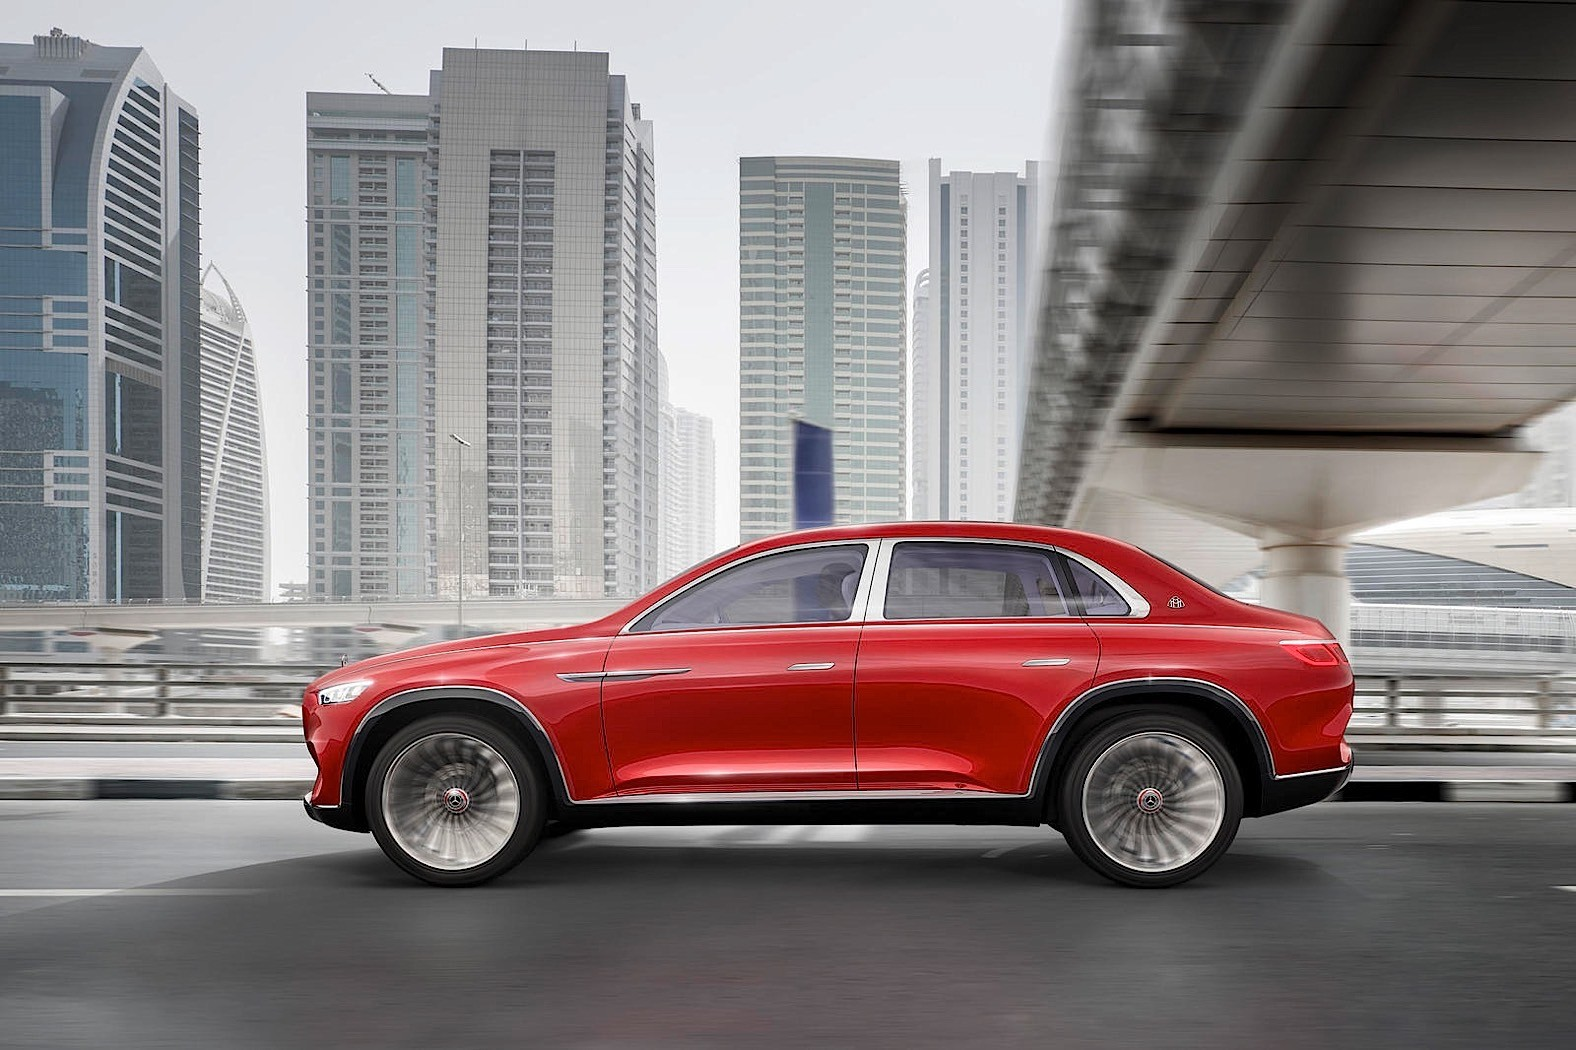 Mercedes Maybach Sports Utility Limousine Reportedly Going Into Production Autoevolution